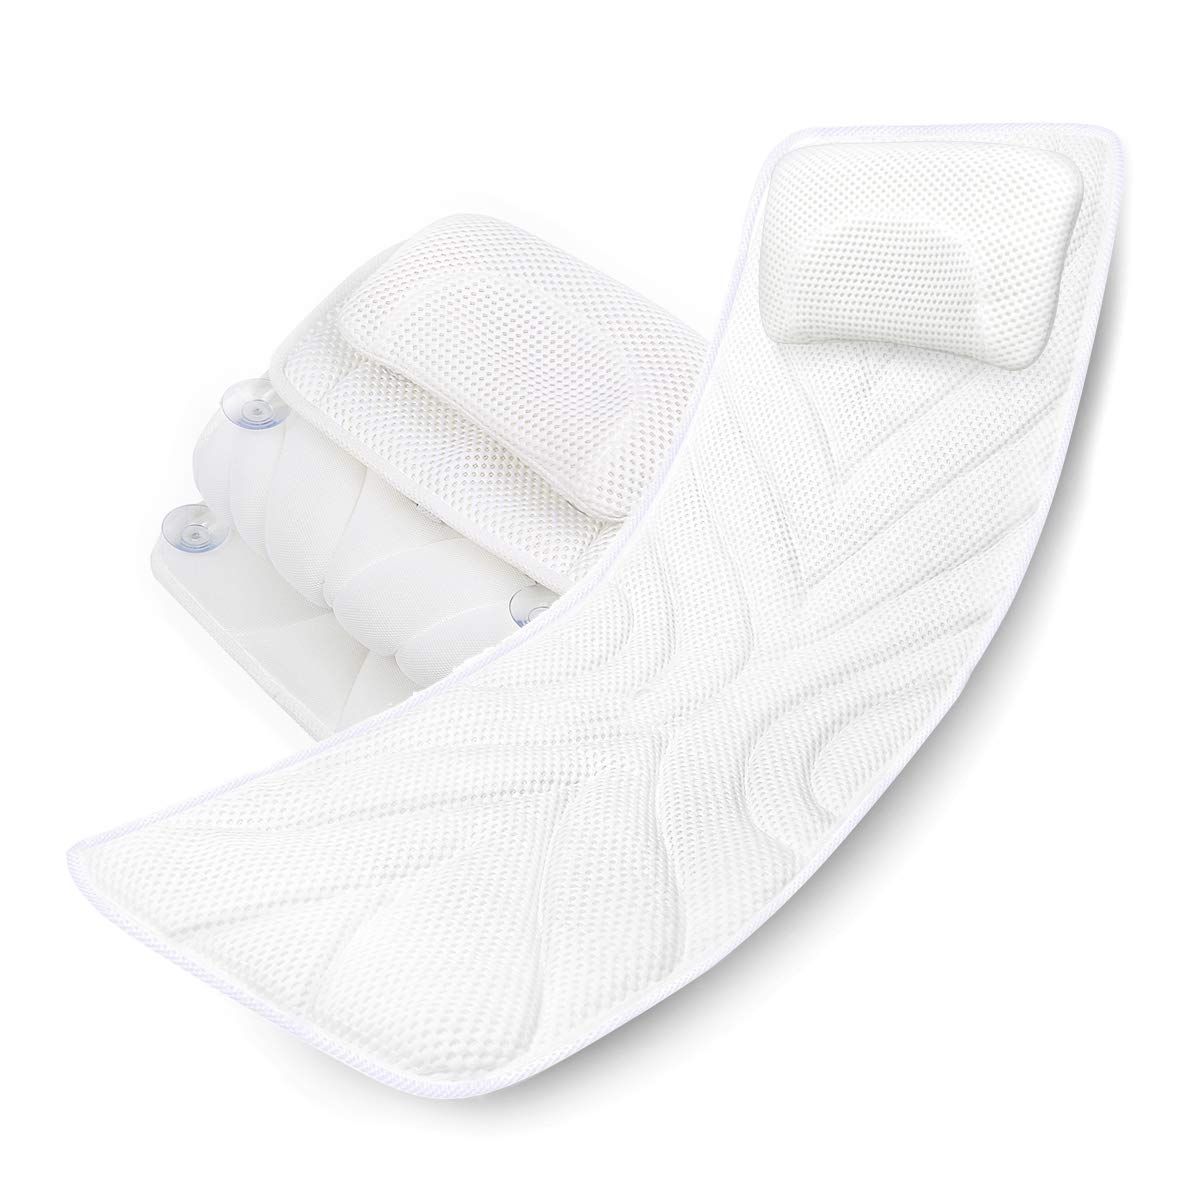 Bath Rest Spa Bath Pillow Mattress, Full Body Luxury Soft Quilted Cushion Mat with Large Non Slip Suction Cups, Comfort Head Rest and Back Tailbone Support, Quick Drying